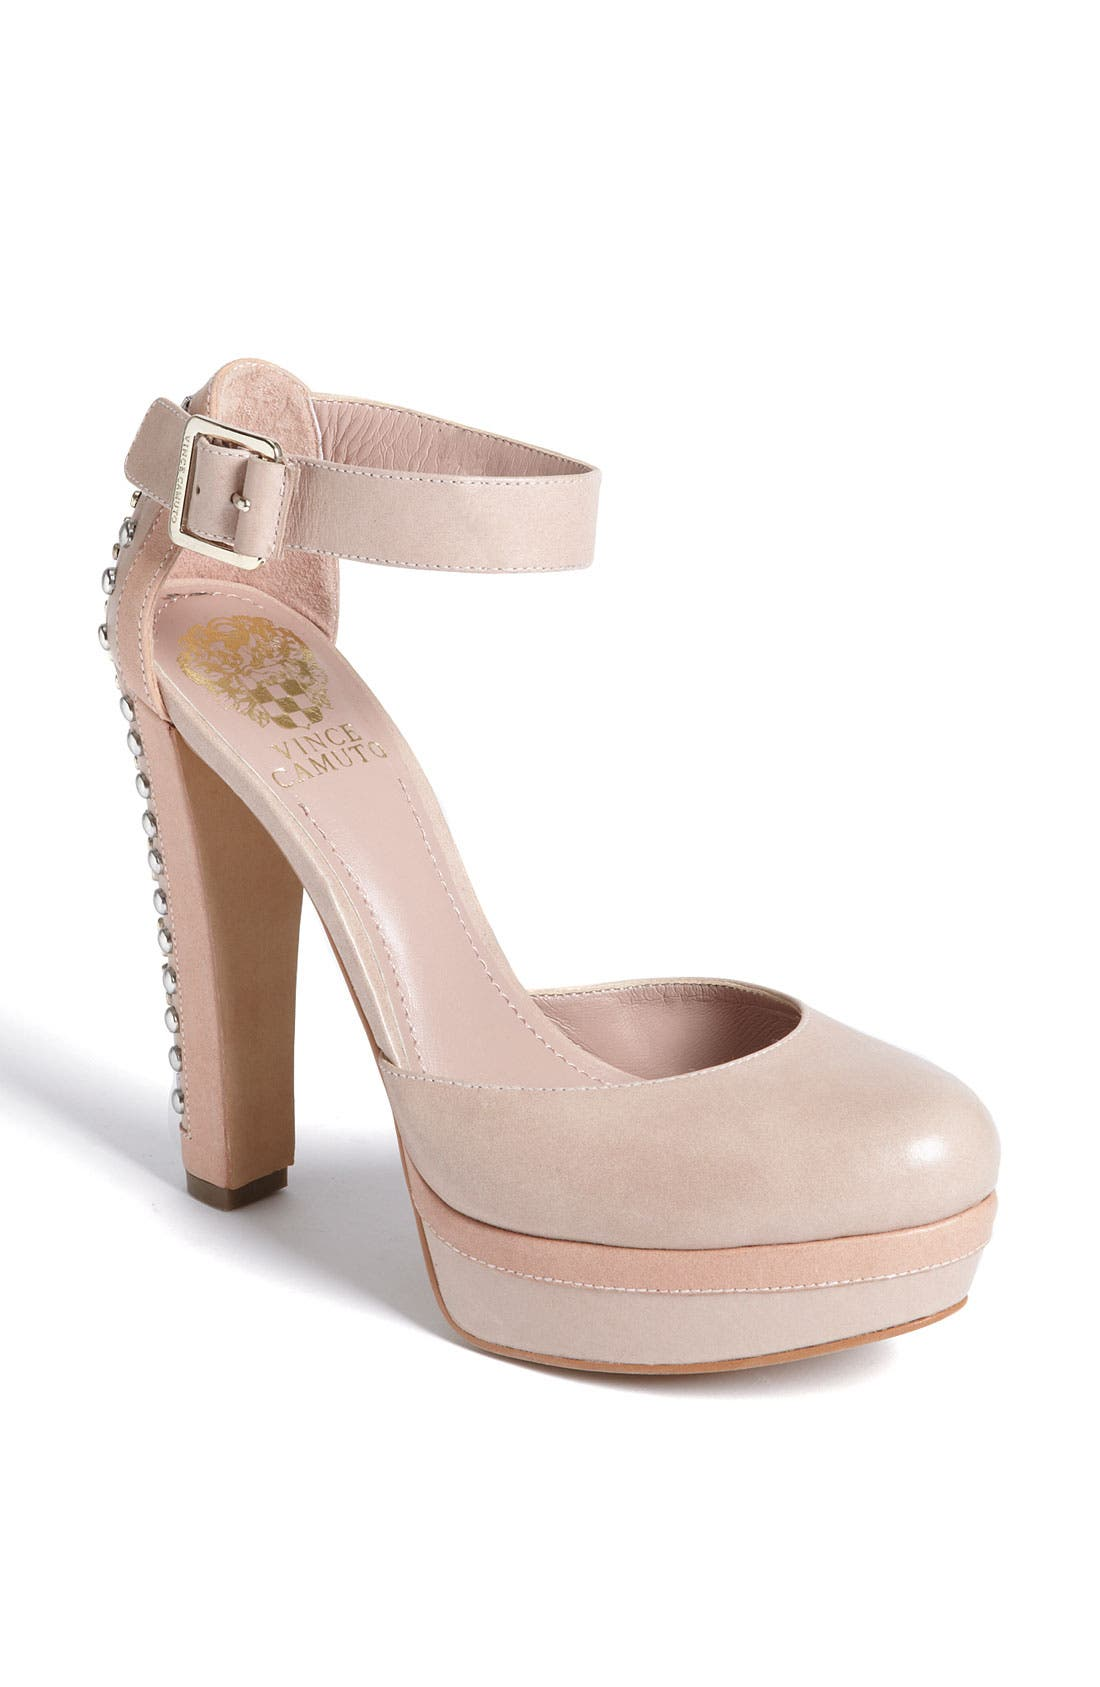 Alternate Image 1 Selected - Vince Camuto 'Jemmy' Pump